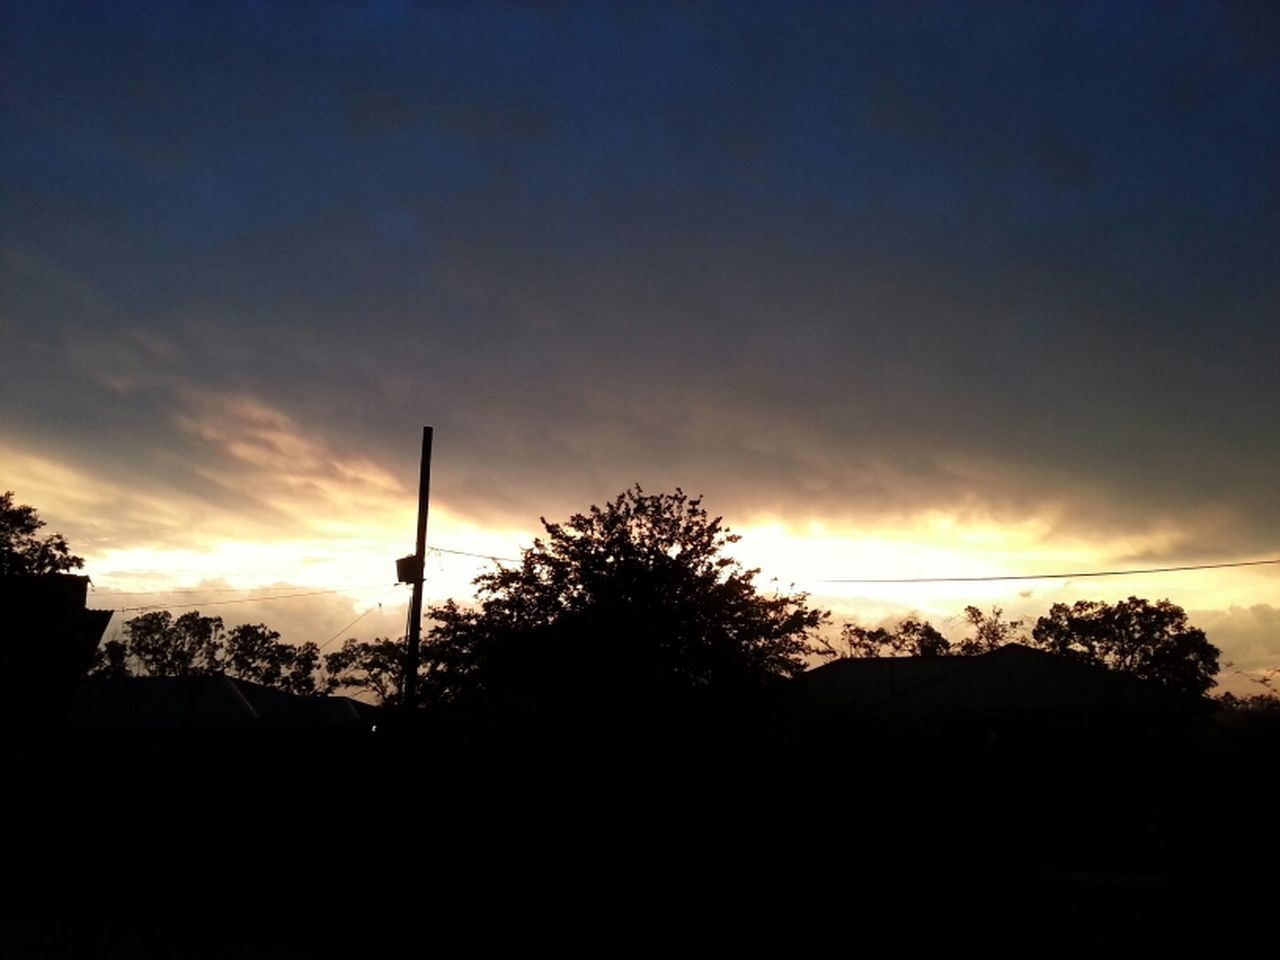 sunset, silhouette, sky, nature, beauty in nature, tree, tranquil scene, tranquility, cloud - sky, scenics, no people, sun, outdoors, day